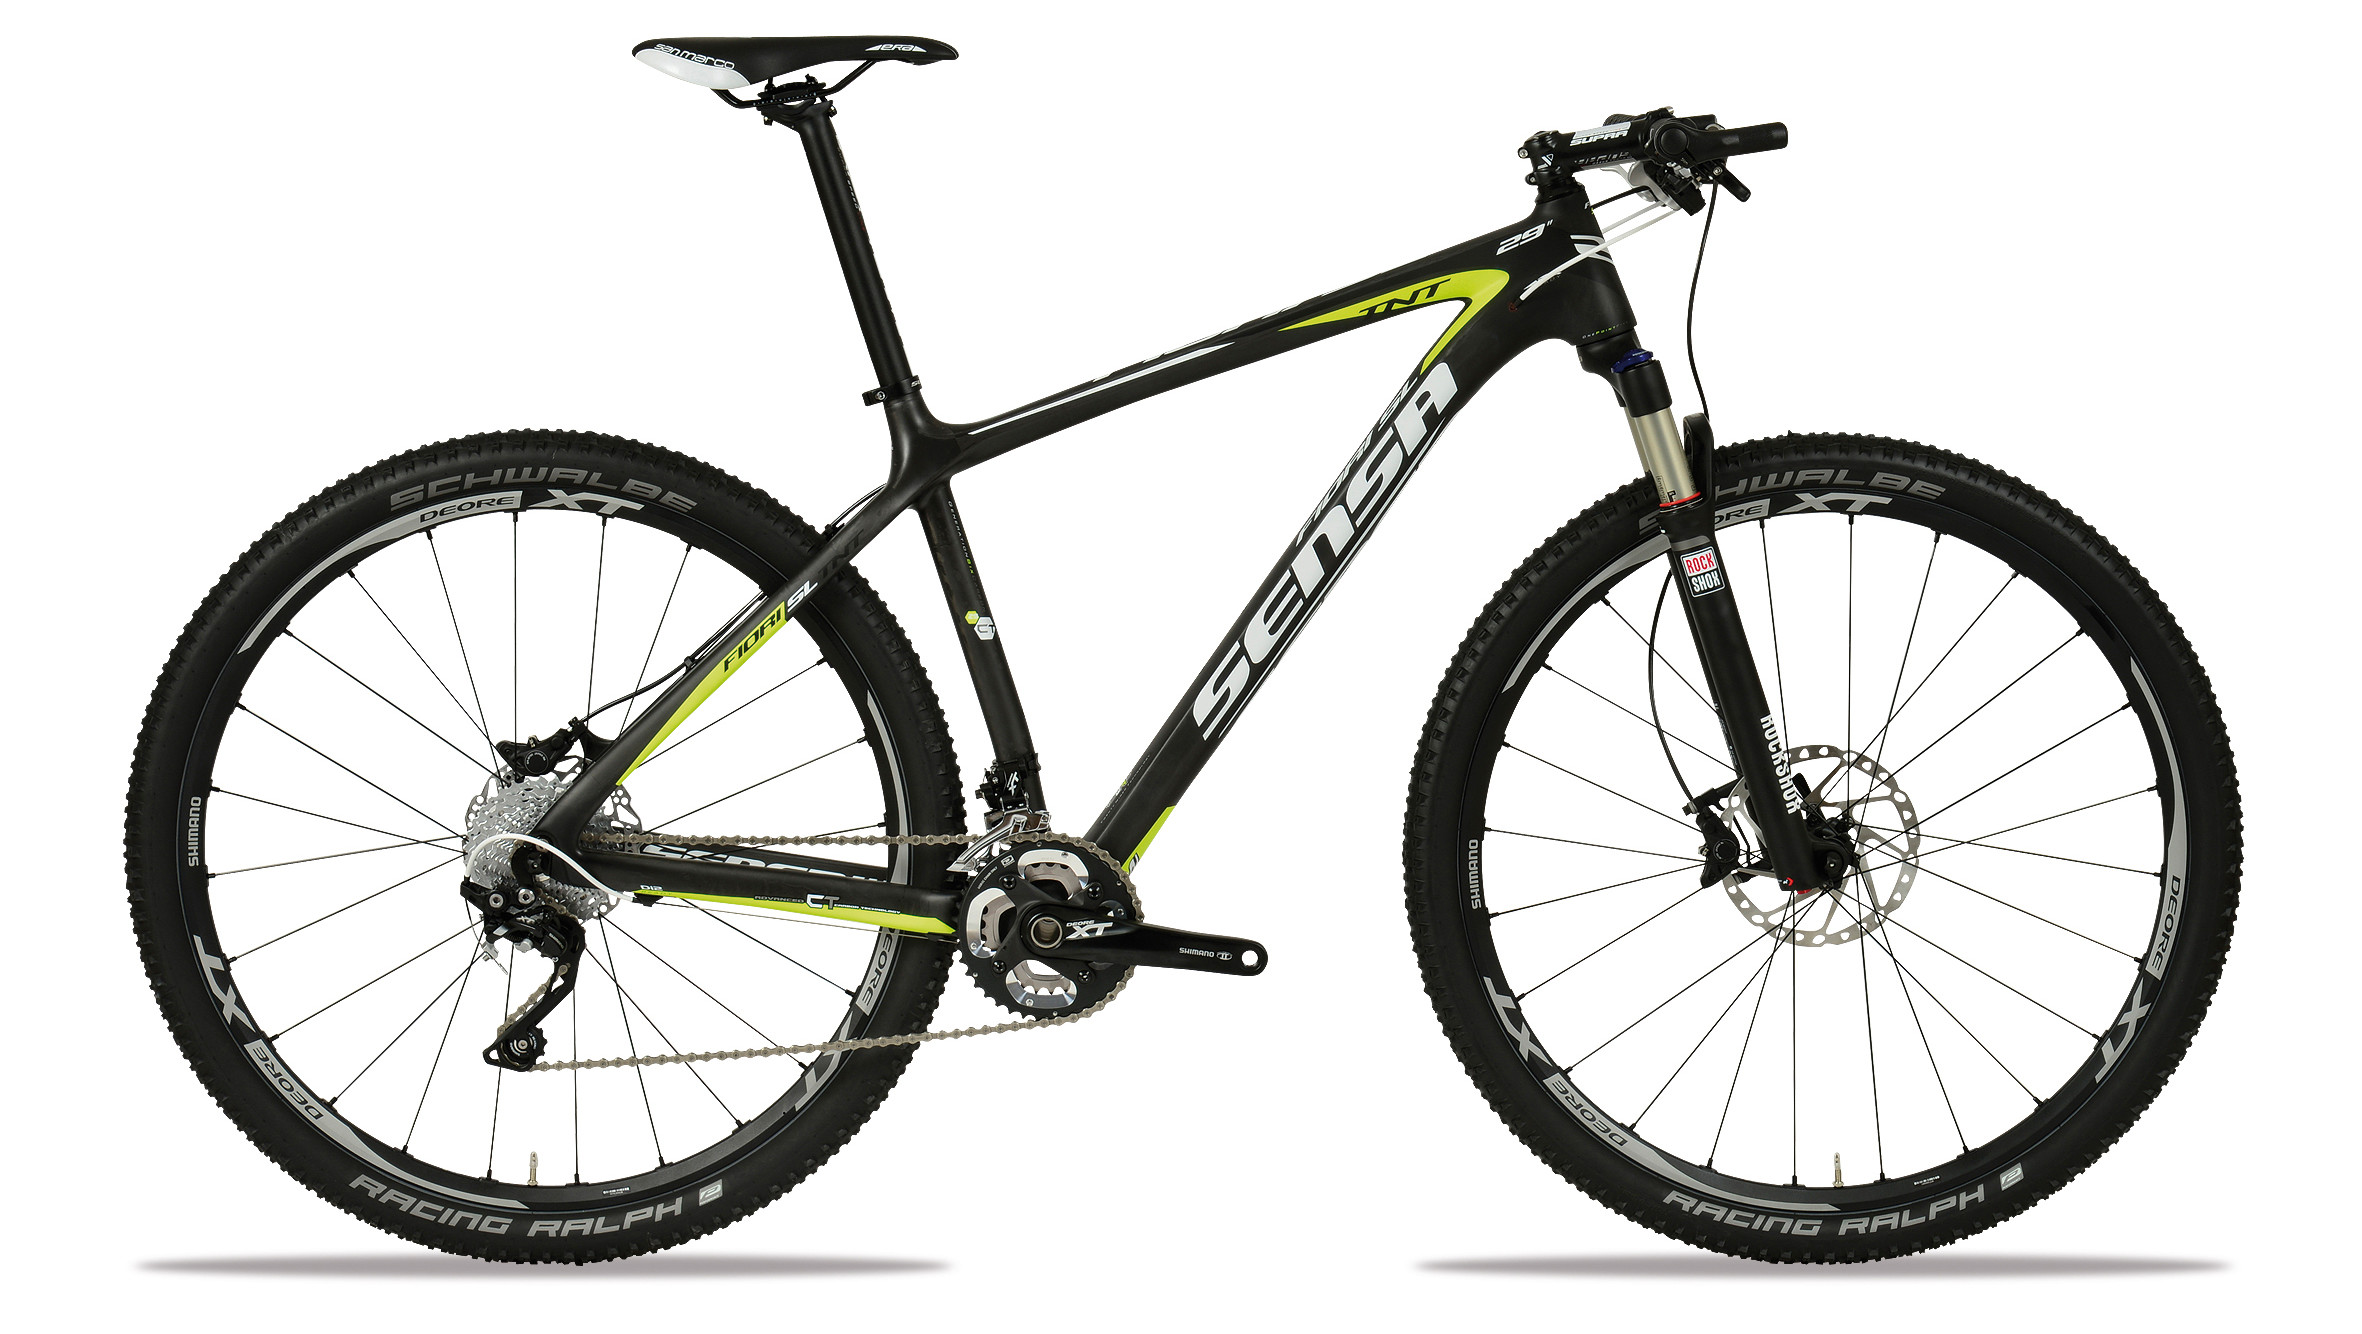 17419_sensa_fiori_sl_tnt_pro_29er_mountain_bike